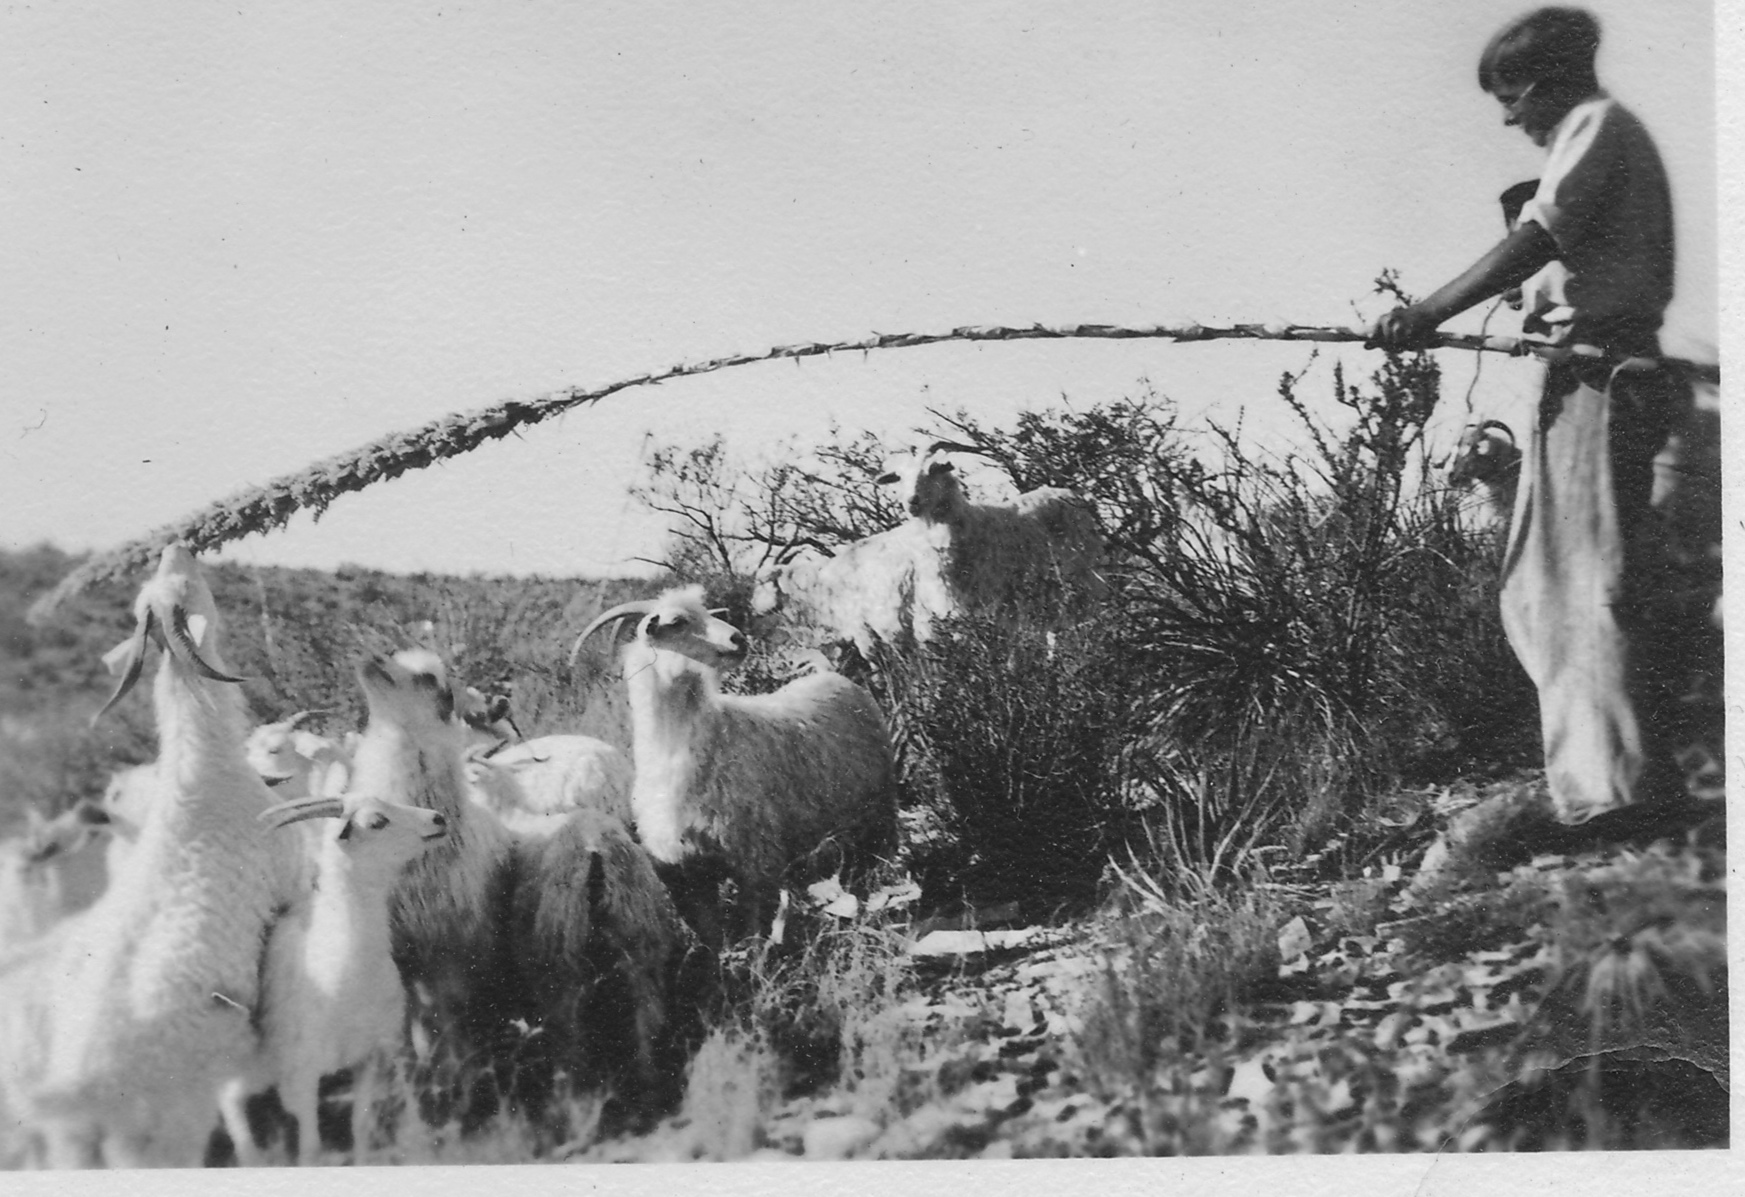 Feeding sotol to goats during the drought of the 1930s.